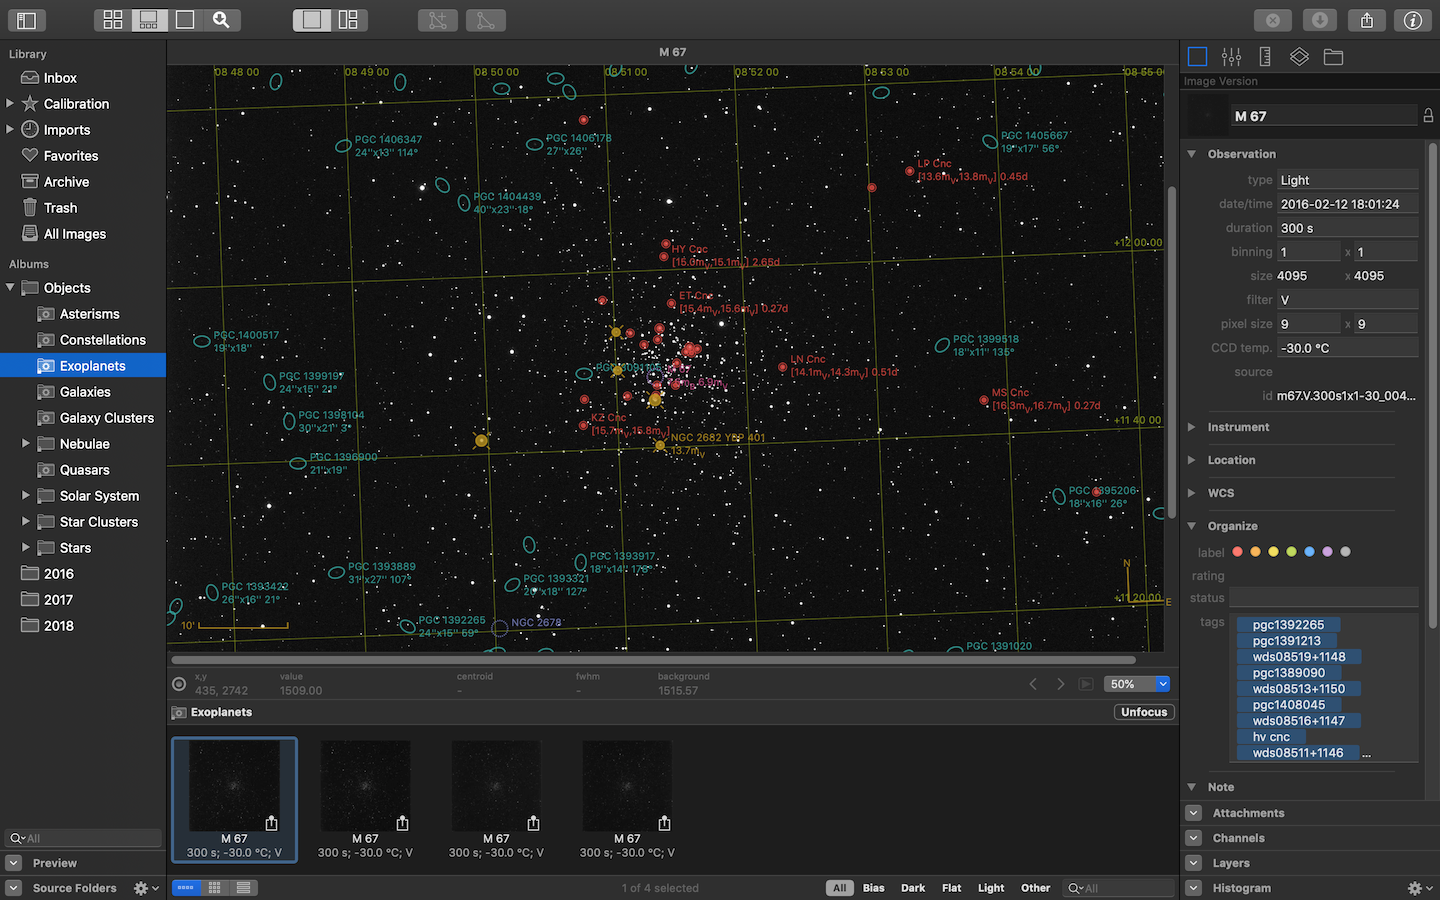 Code Obsession releases Observatory 1.3 for macOS Image